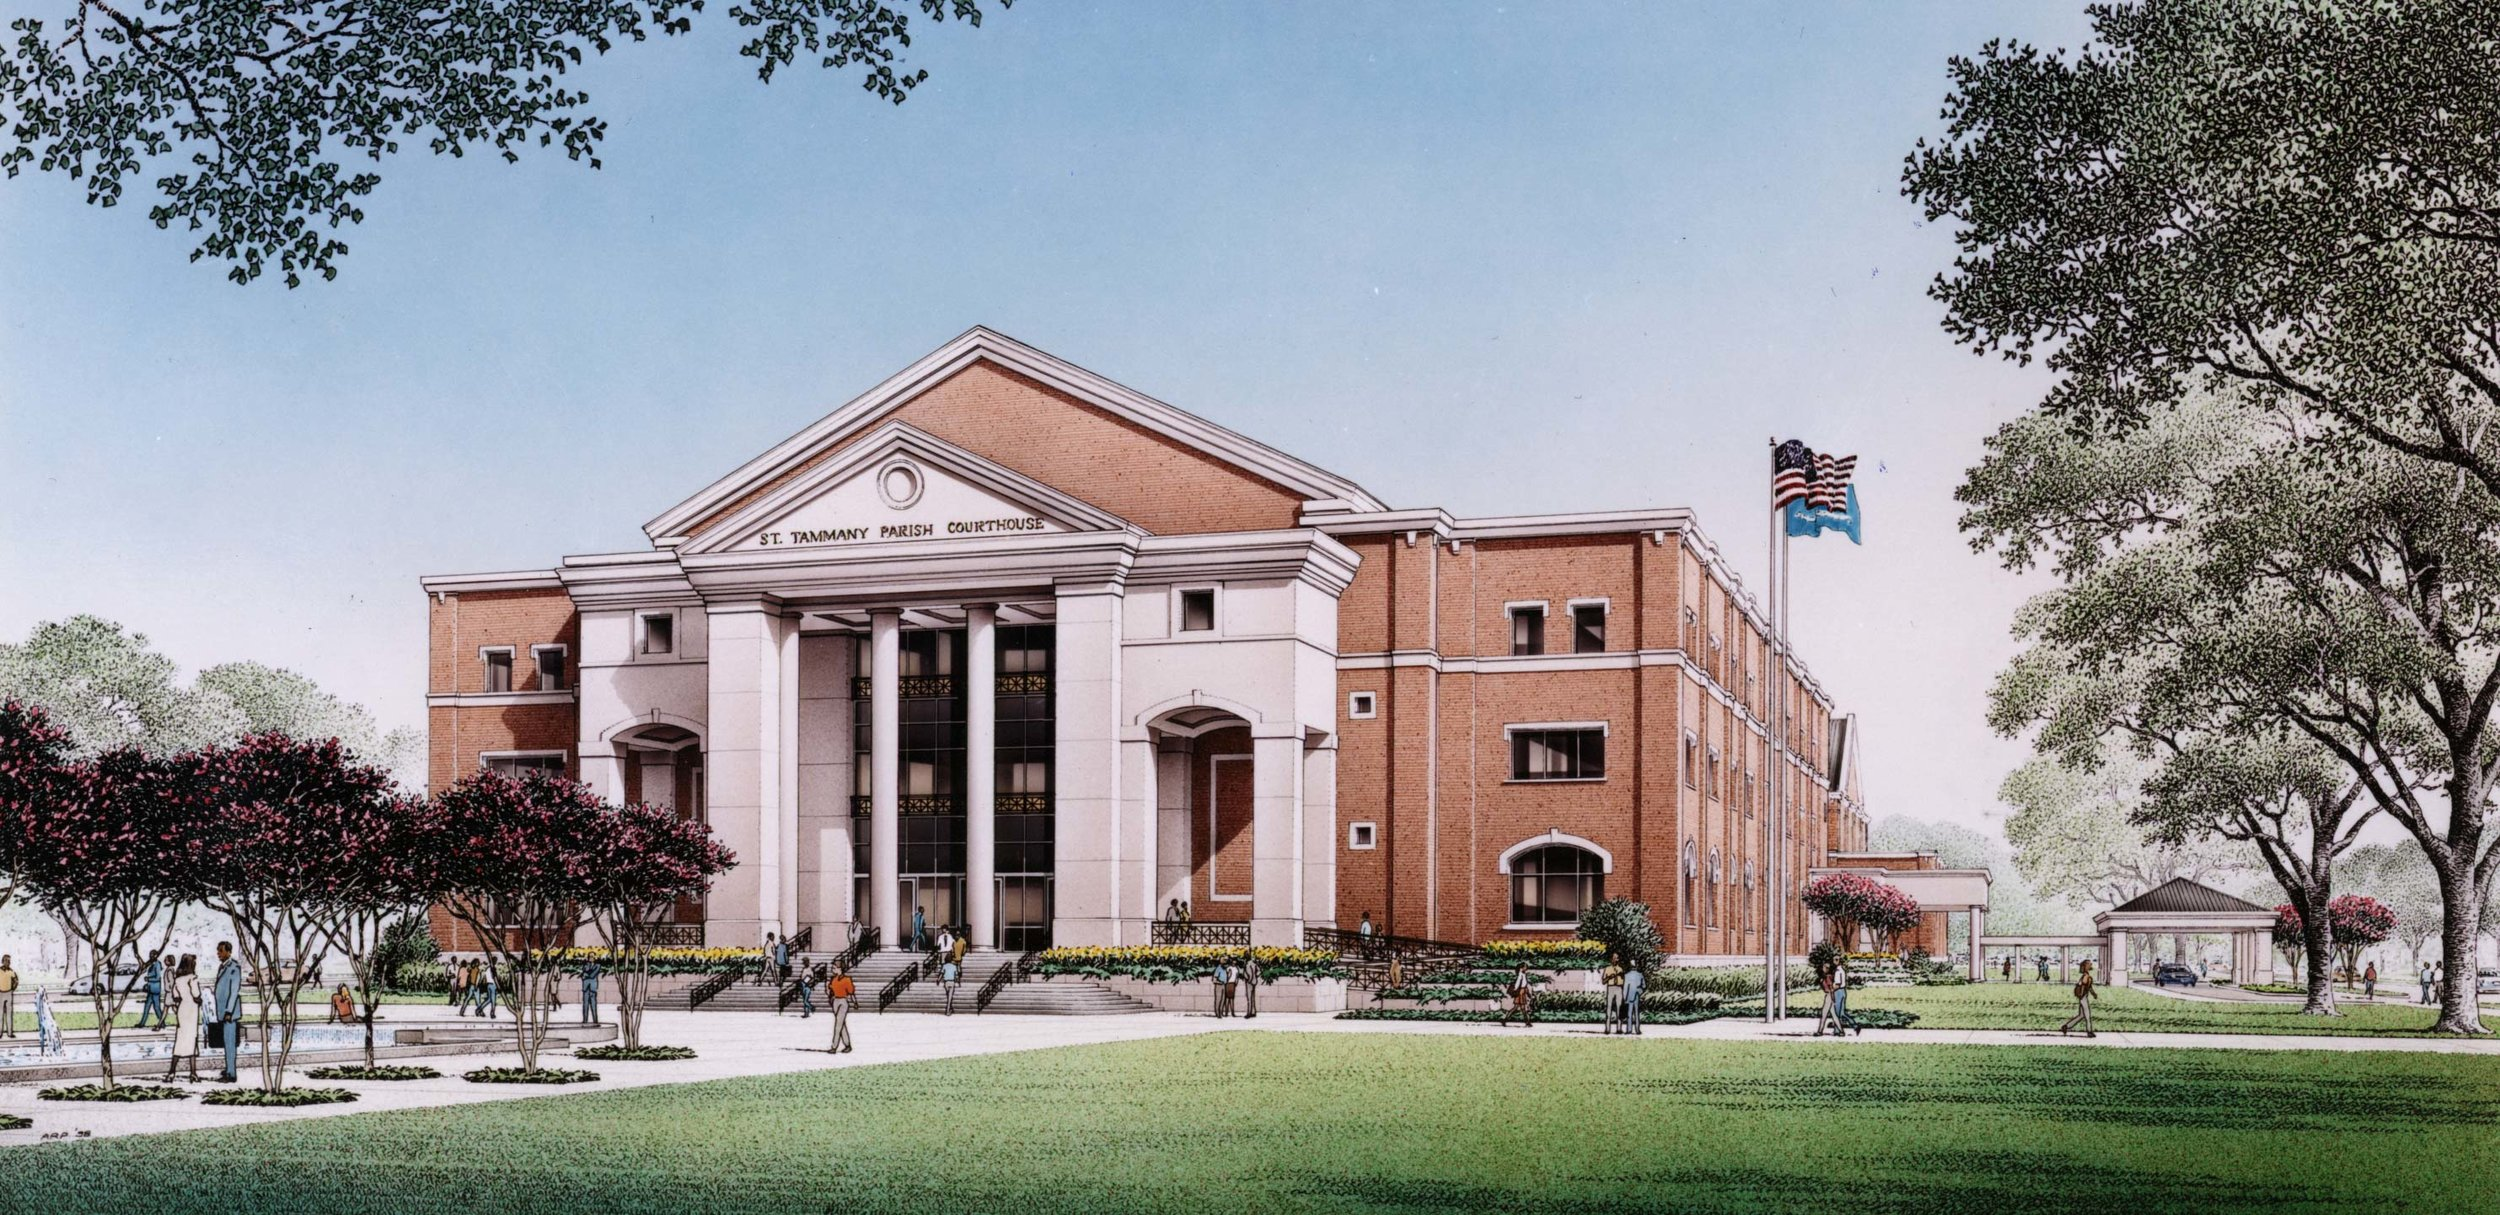 ST. TAMMANY GOVERNMENTAL AND JUSTICE COMPLEX